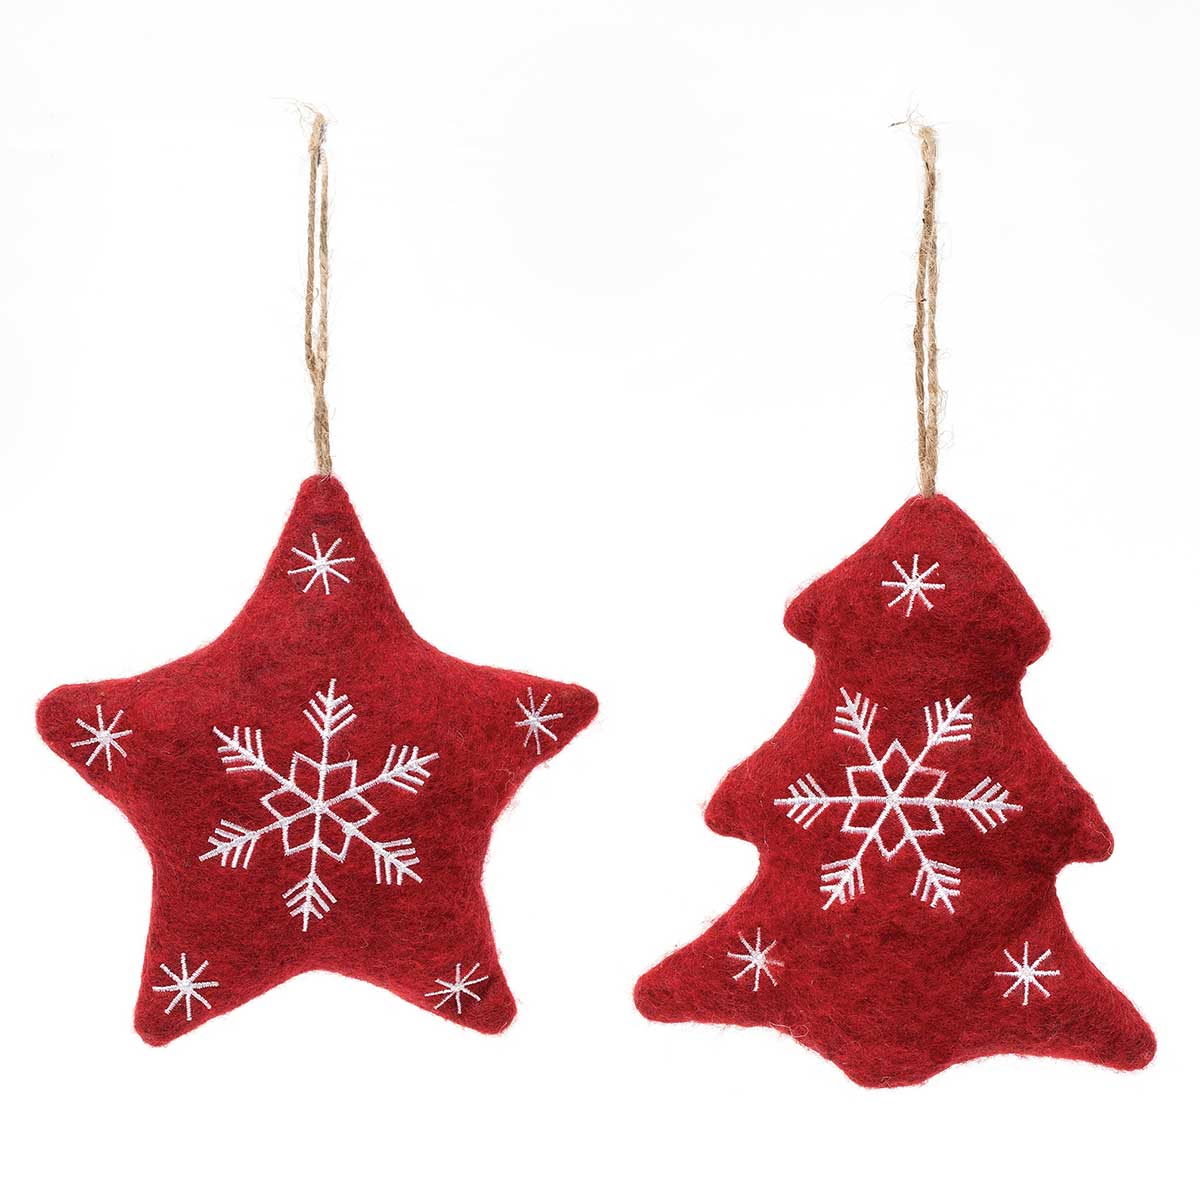 STAR & TREE PLUSH ORNAMENT